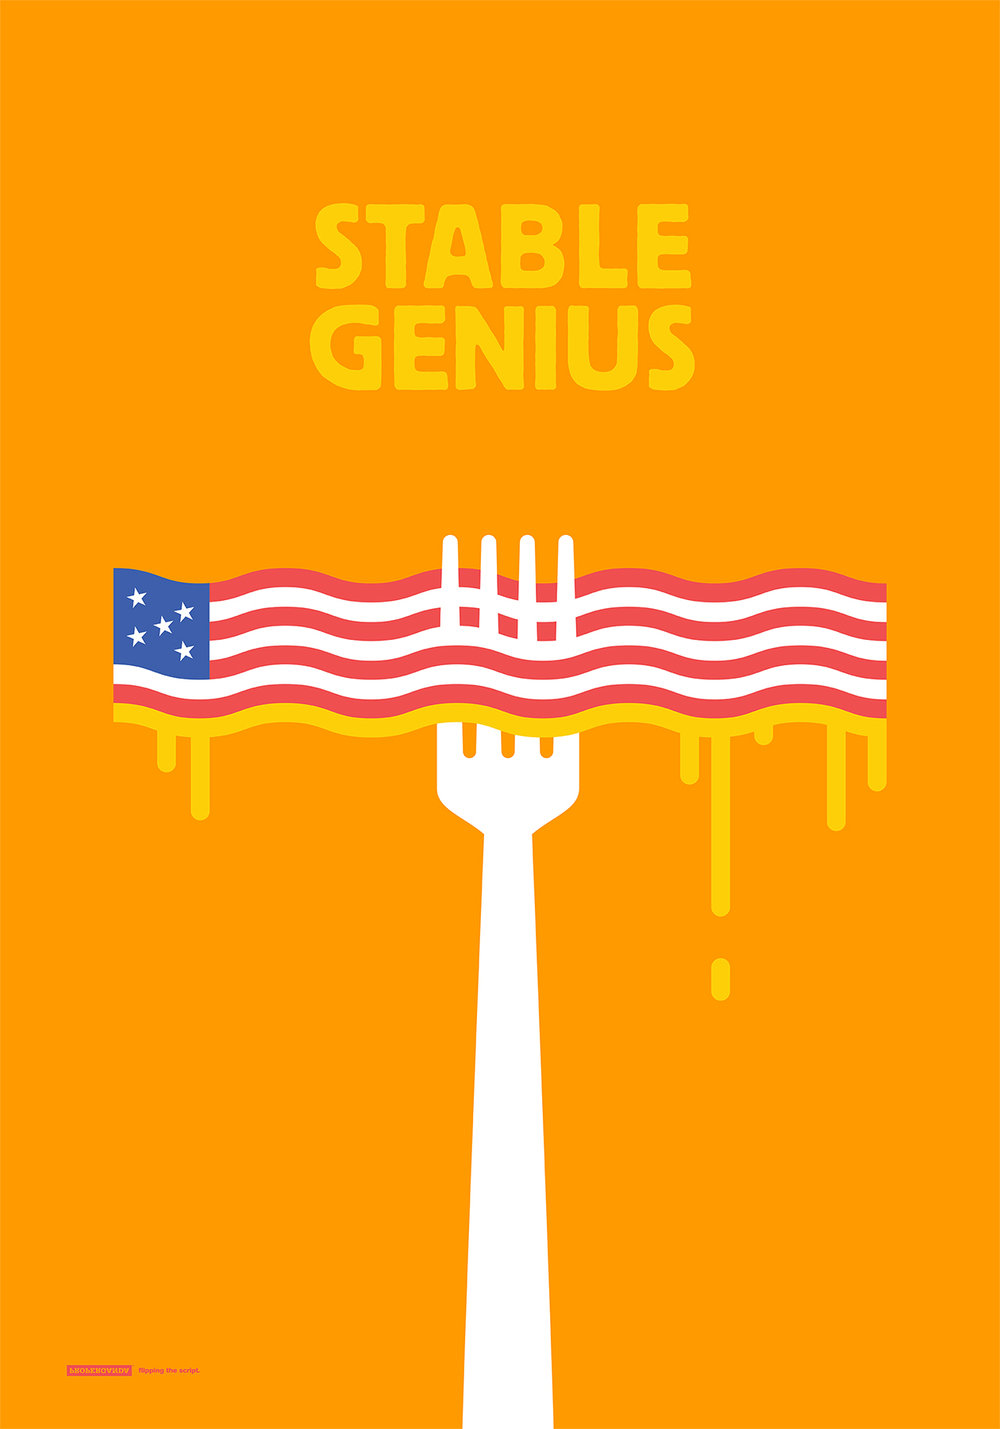 STABLE GENIUS  Buy Prints Online